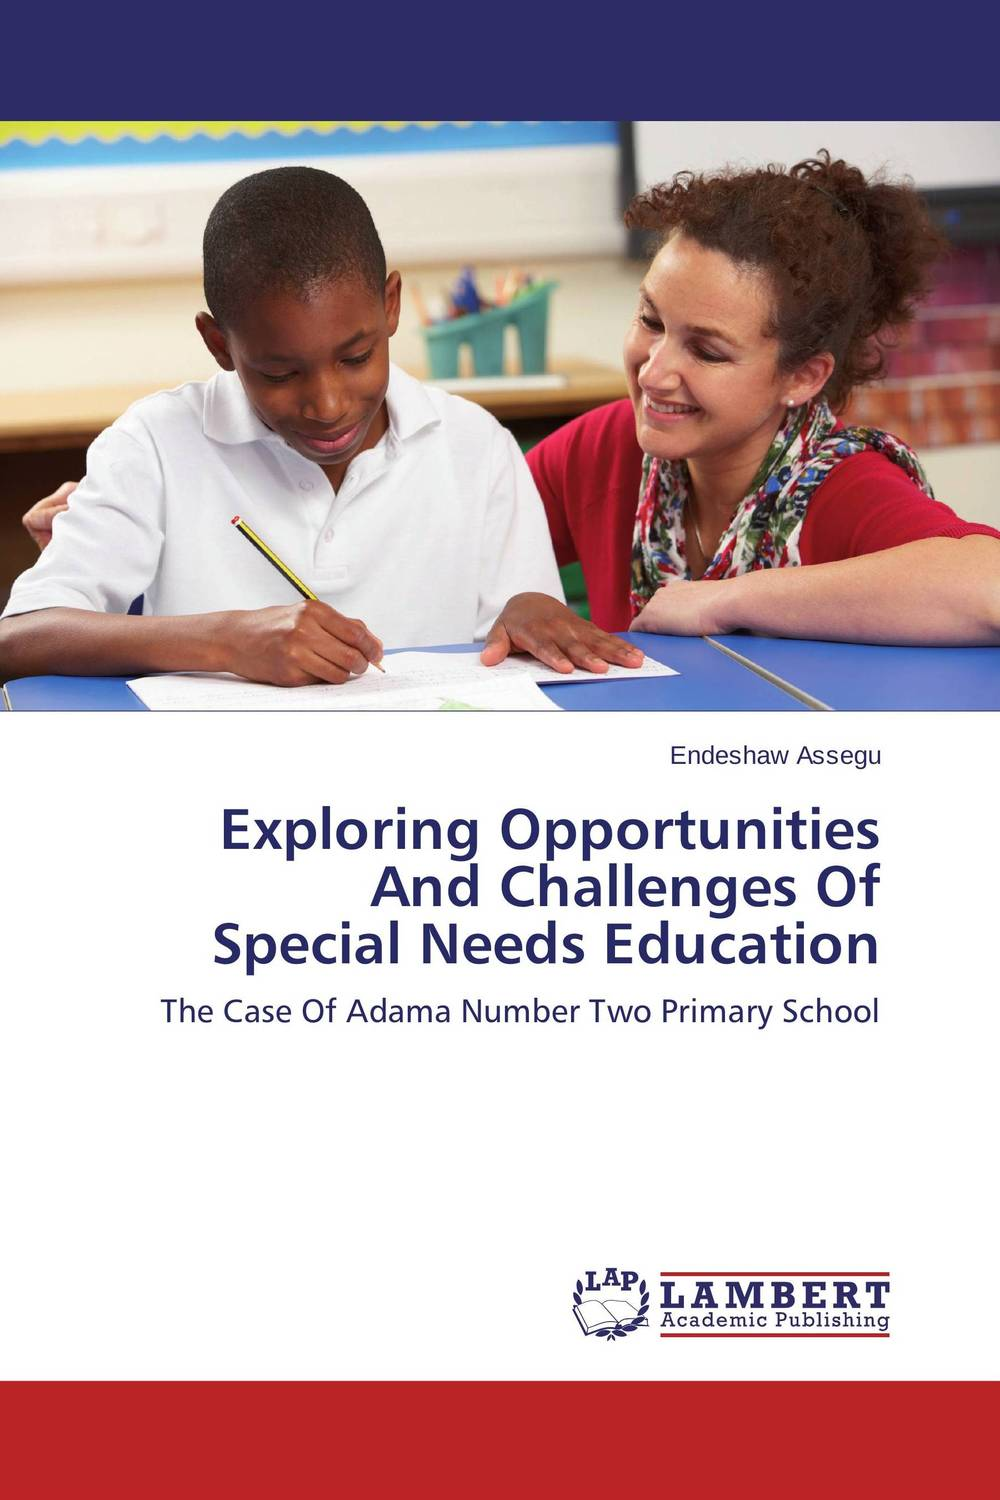 Exploring Opportunities And Challenges Of Special Needs Education education special educational needs